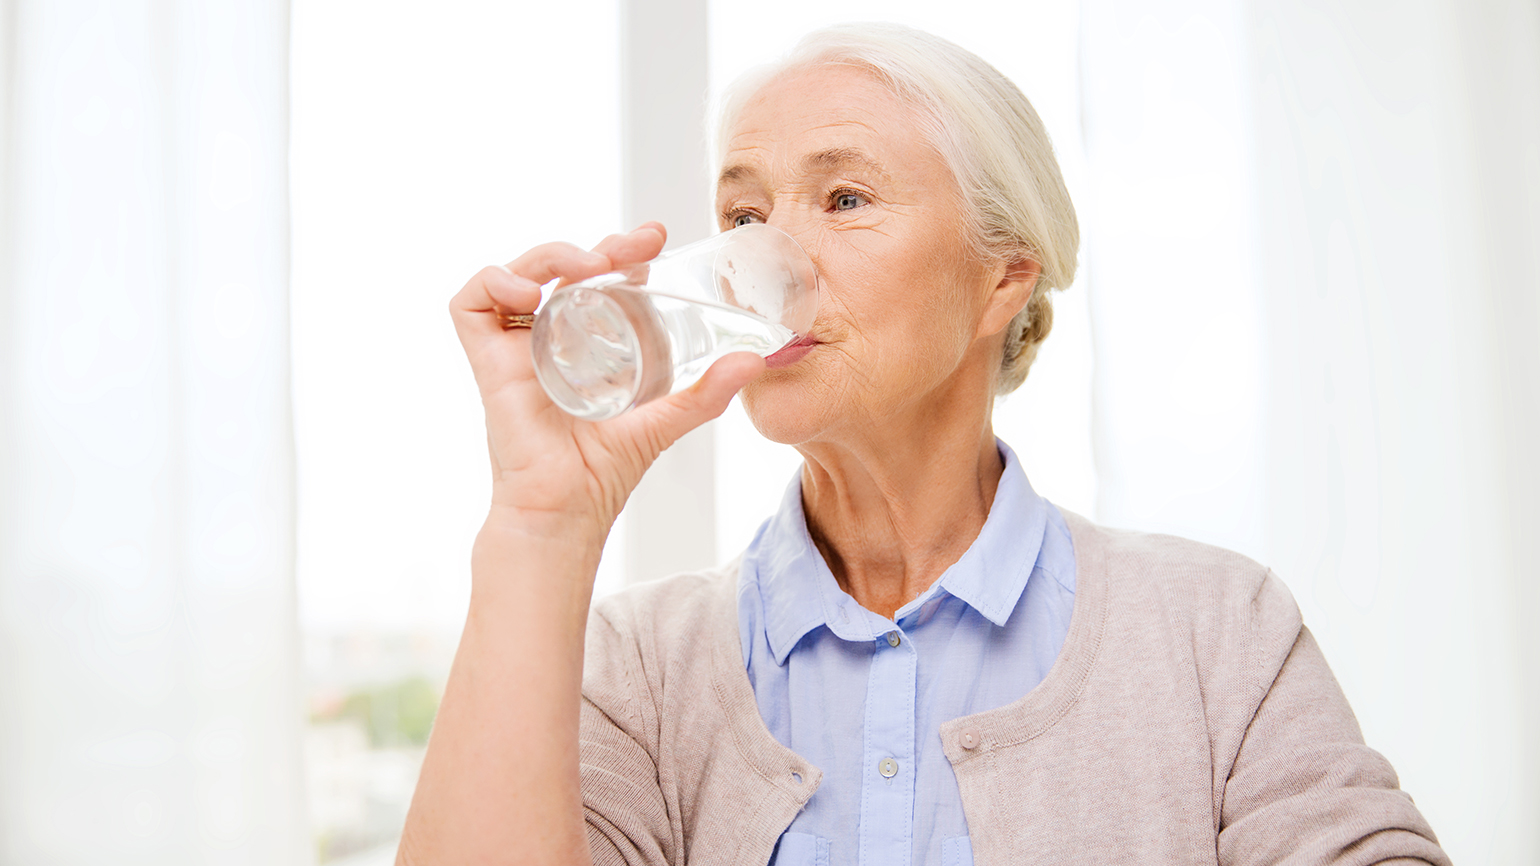 A senior woman drinks a tall glass of water